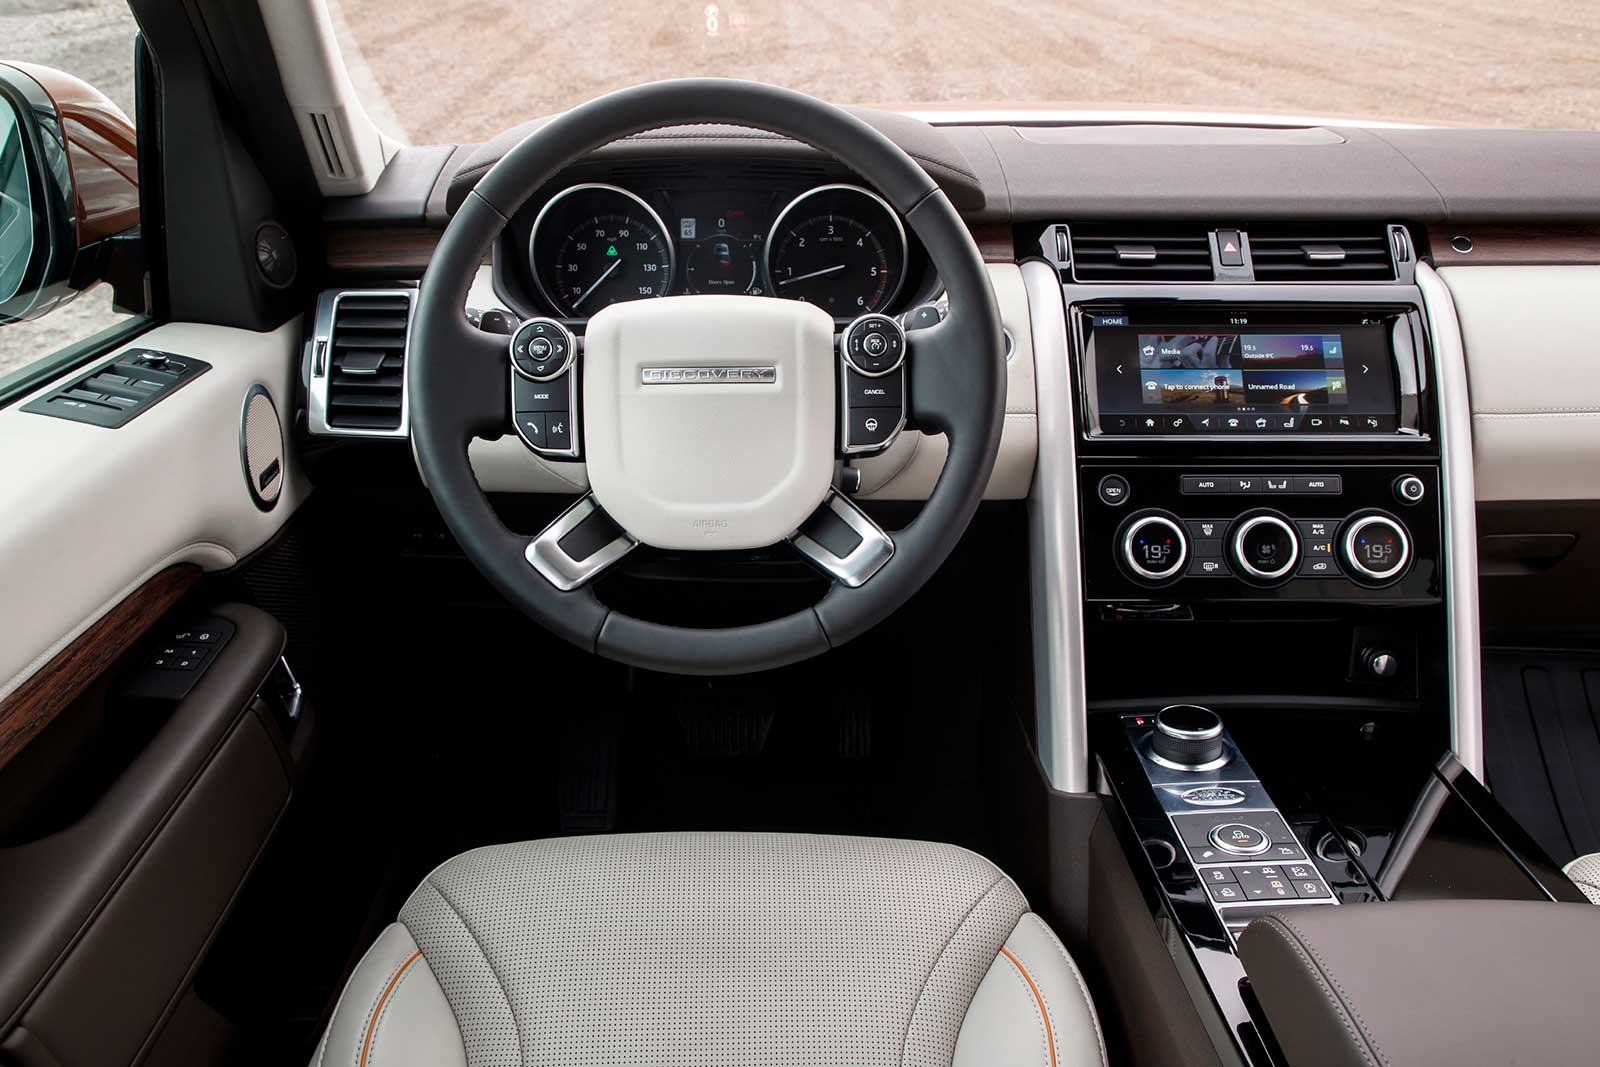 https://www.autoguide.com/blog/wp-content/gallery/2017-land-rover-discovery-review-3-2-2017/2017-Land-Rover-Discovery-Diesel-Interior-02.jpg